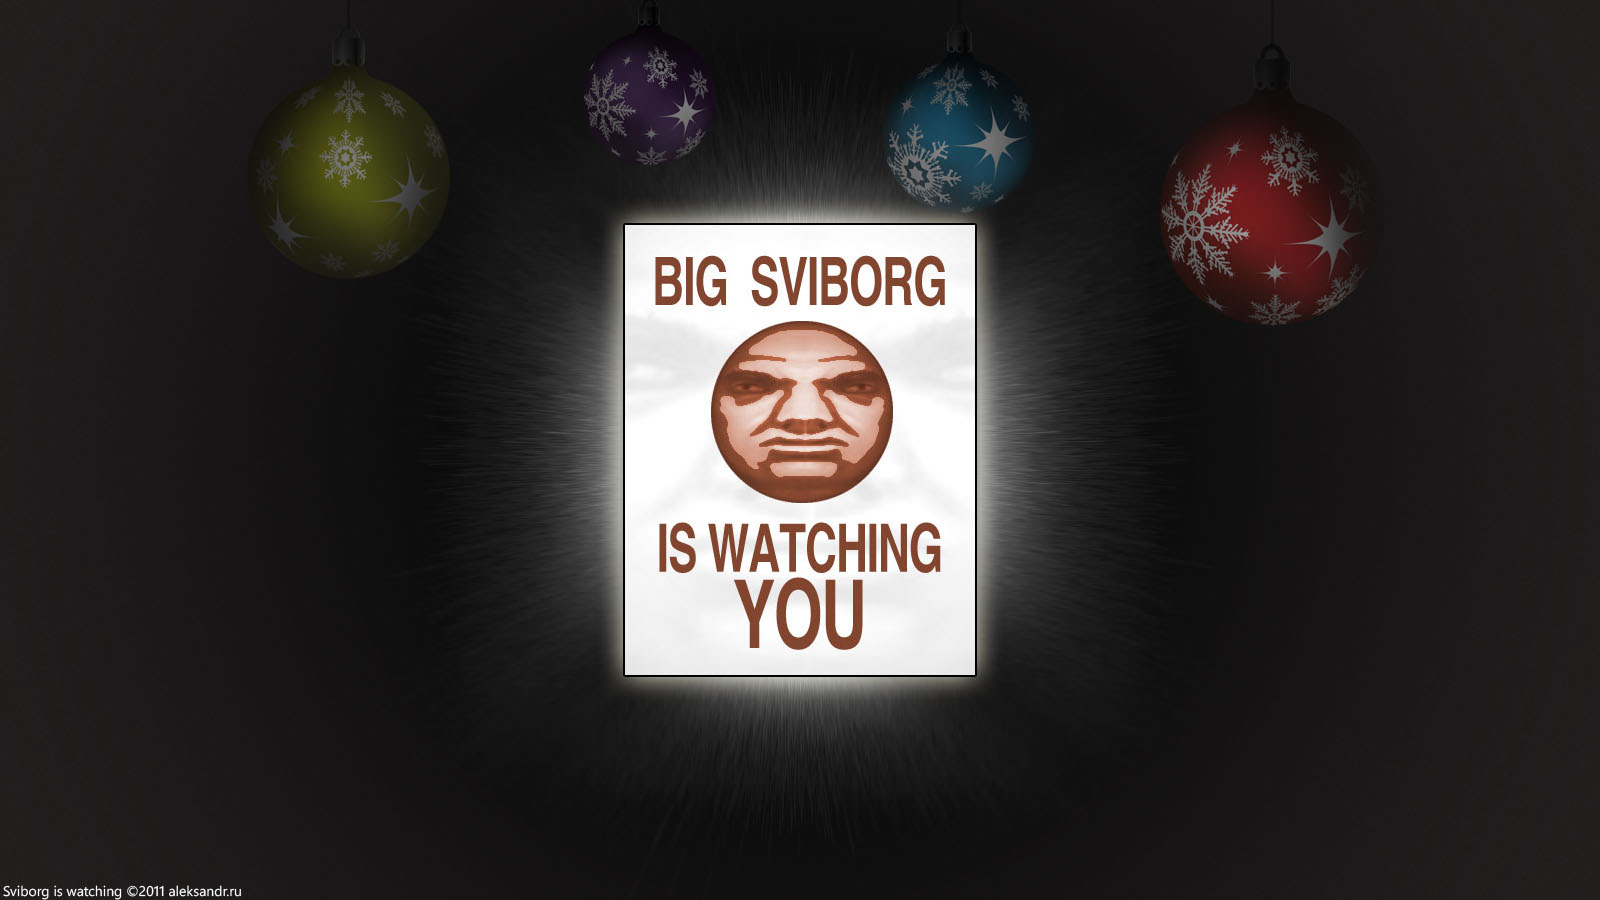 [2011] Sviborg is watching